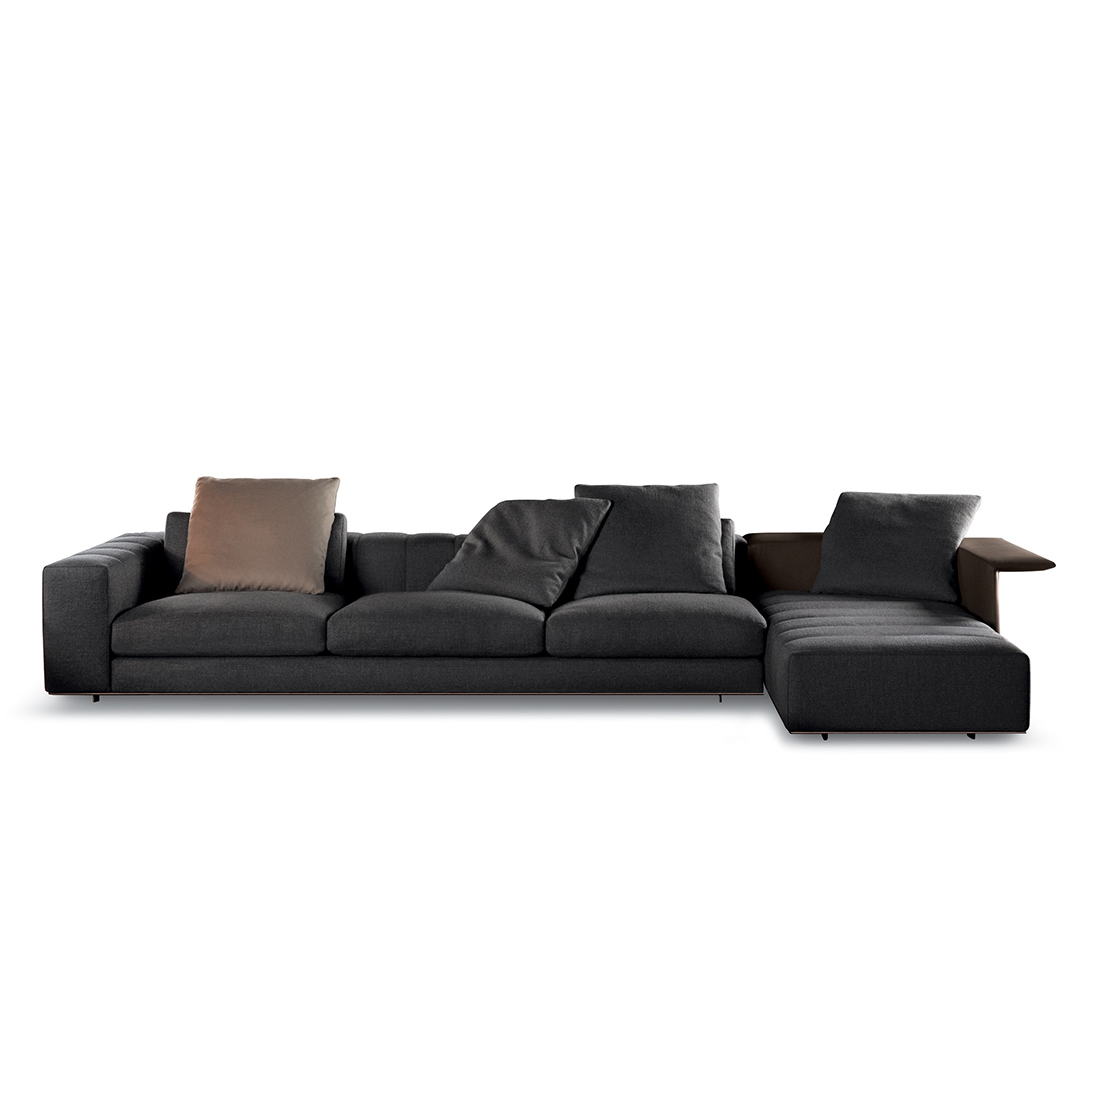 Heine Sofa Freeman Seating System Designed By